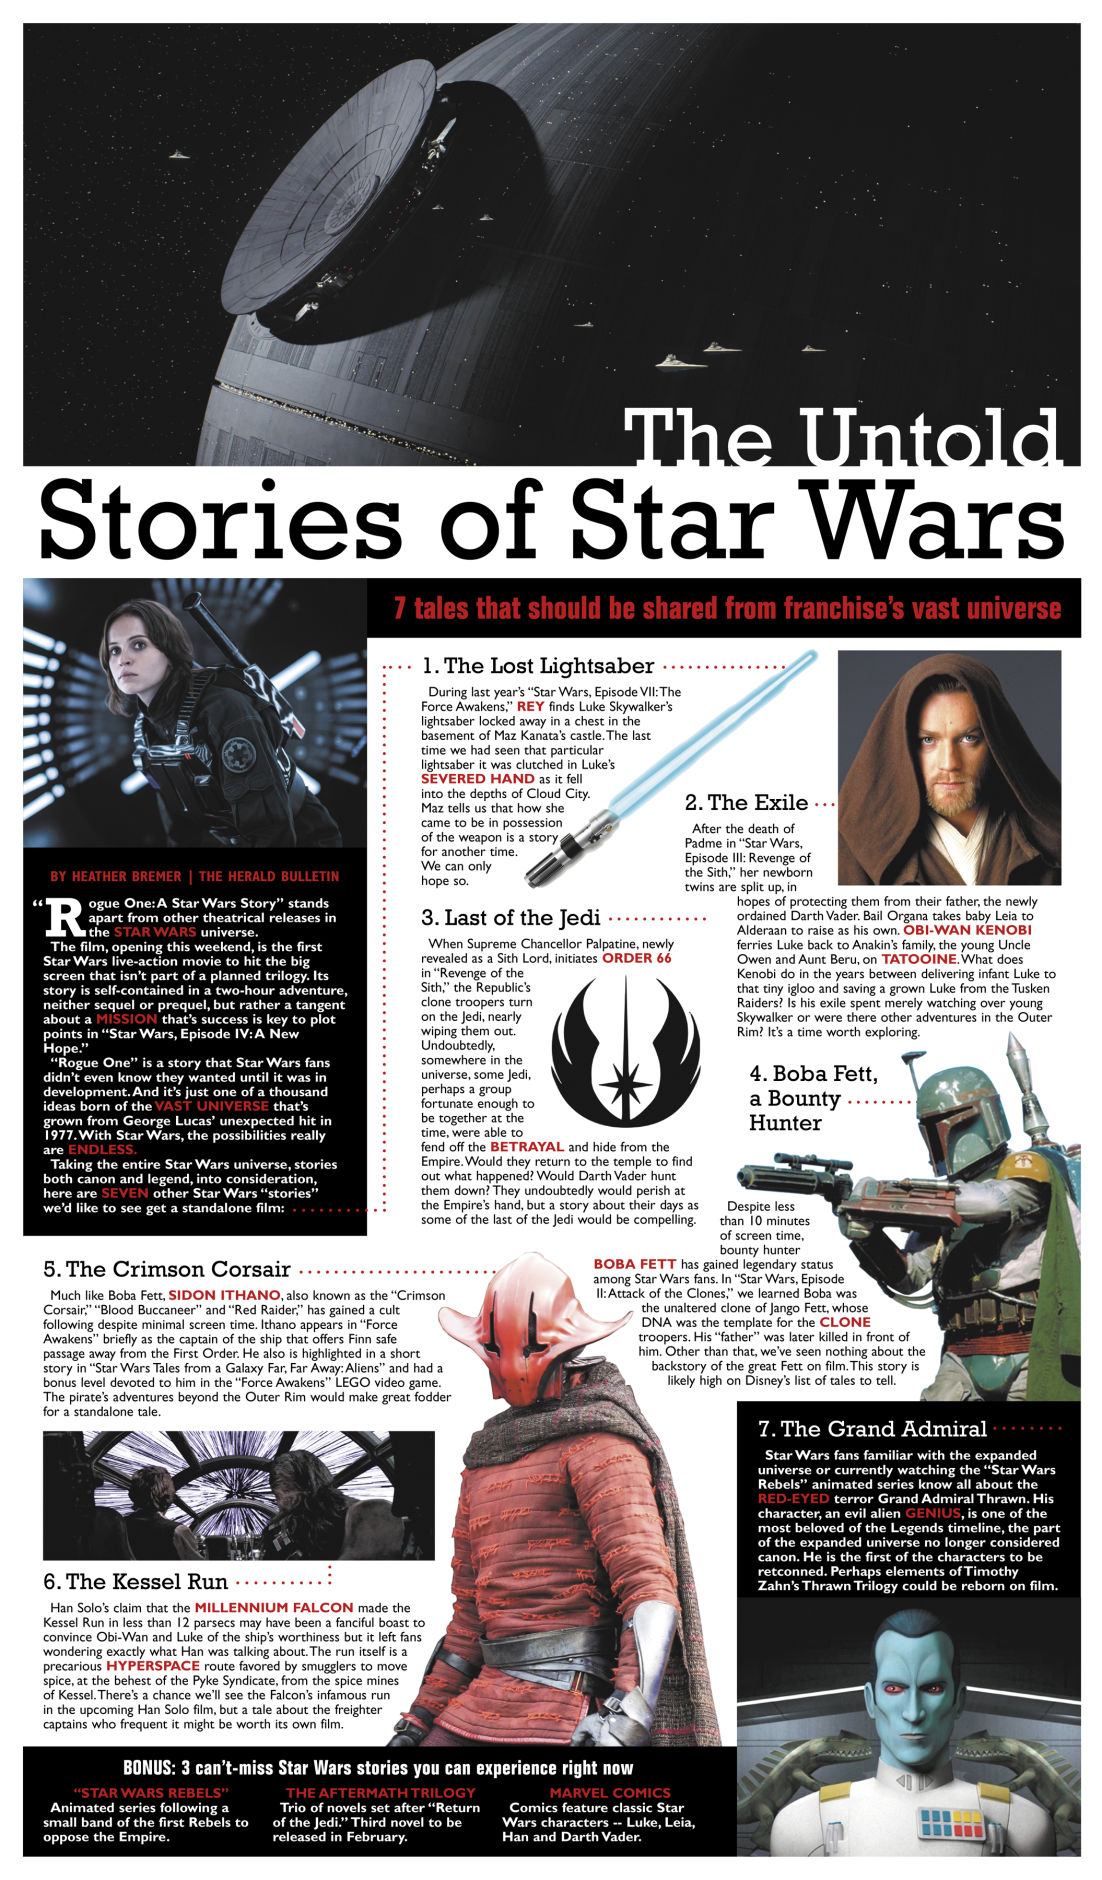 The Untold Stories of Star Wars | Entertainment | heraldbulletin.com